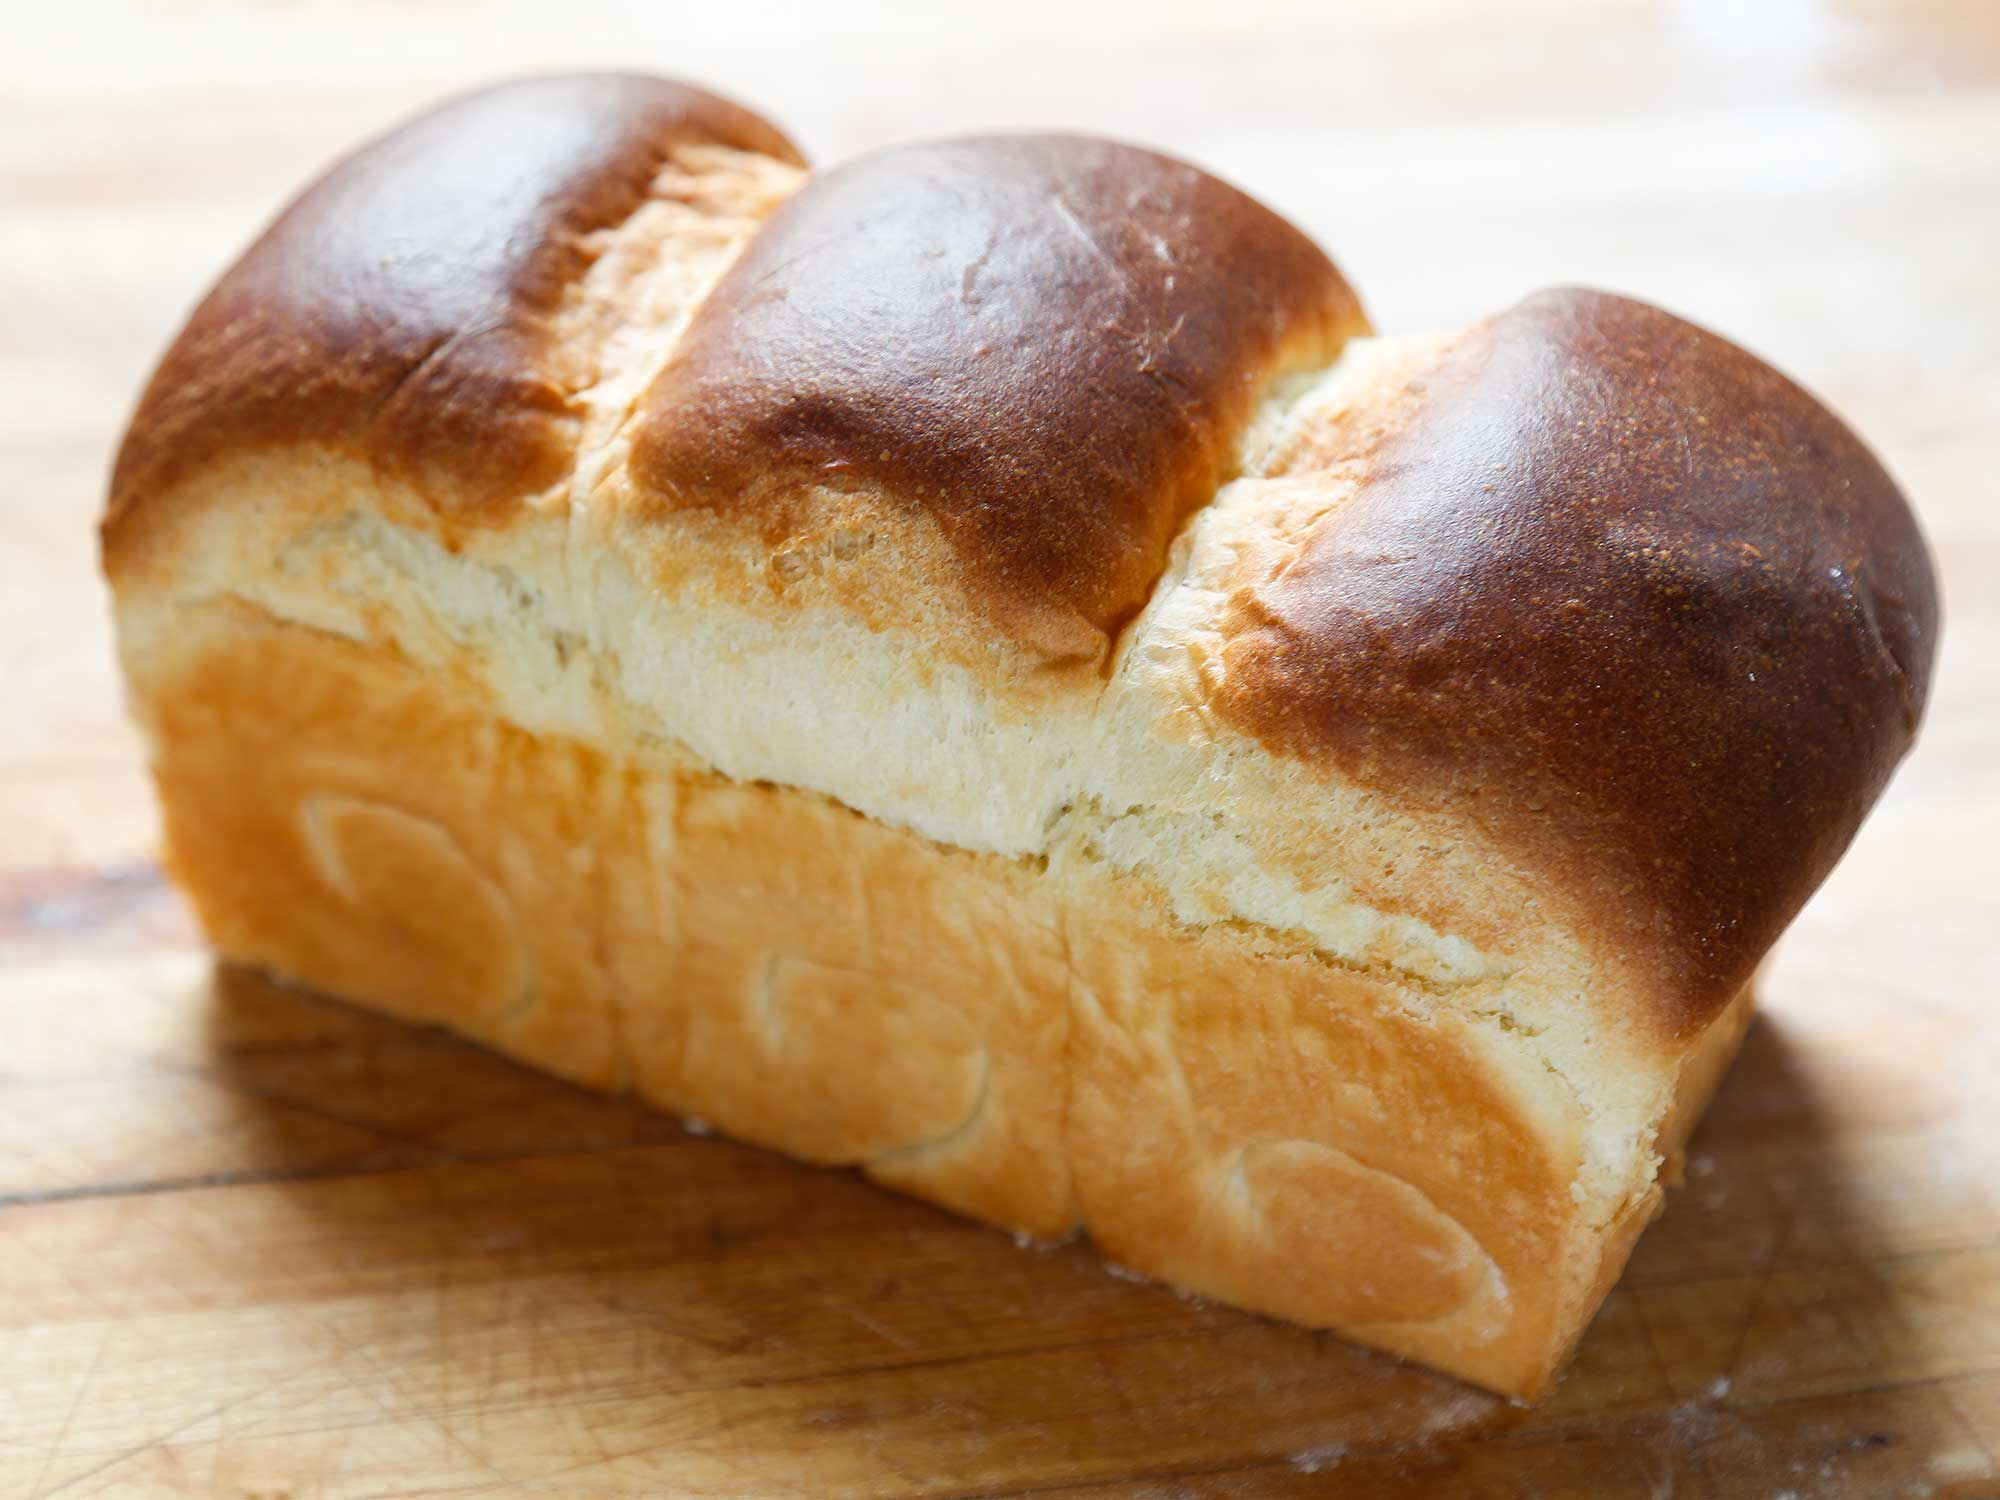 """An ethereally fluffy, generously buttery, and delightfully squishable loaf. Get the recipe for <a href=""""https://www.saveur.com/fluffy-white-bread-recipe/"""">The Fluffiest White Bread in the World</a>"""